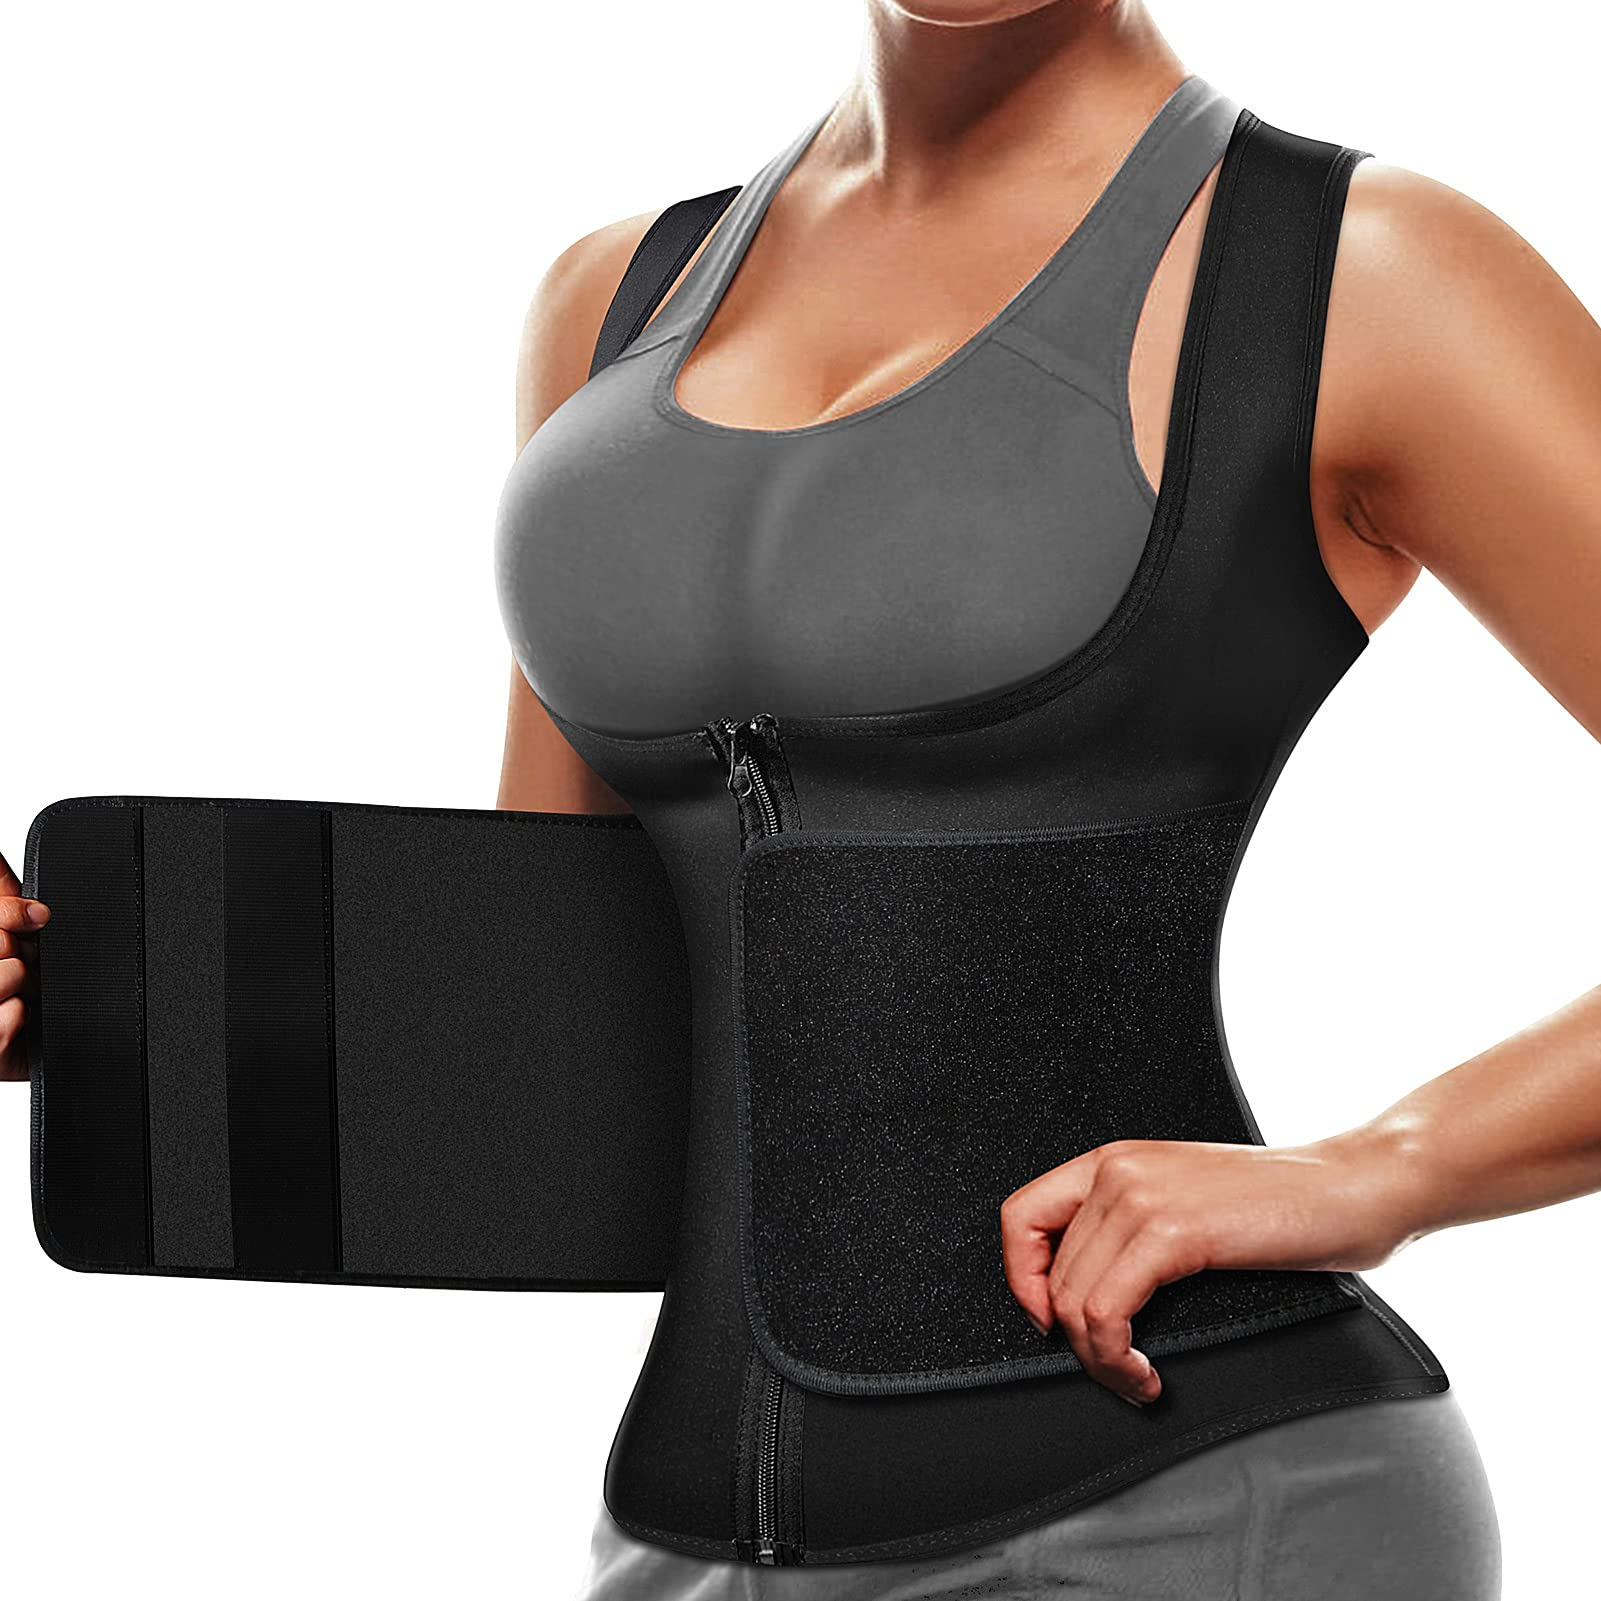 Cimkiz Sauna Suit Women Sweat Vest Waist Trainer Vest Neoprene Workout Tank